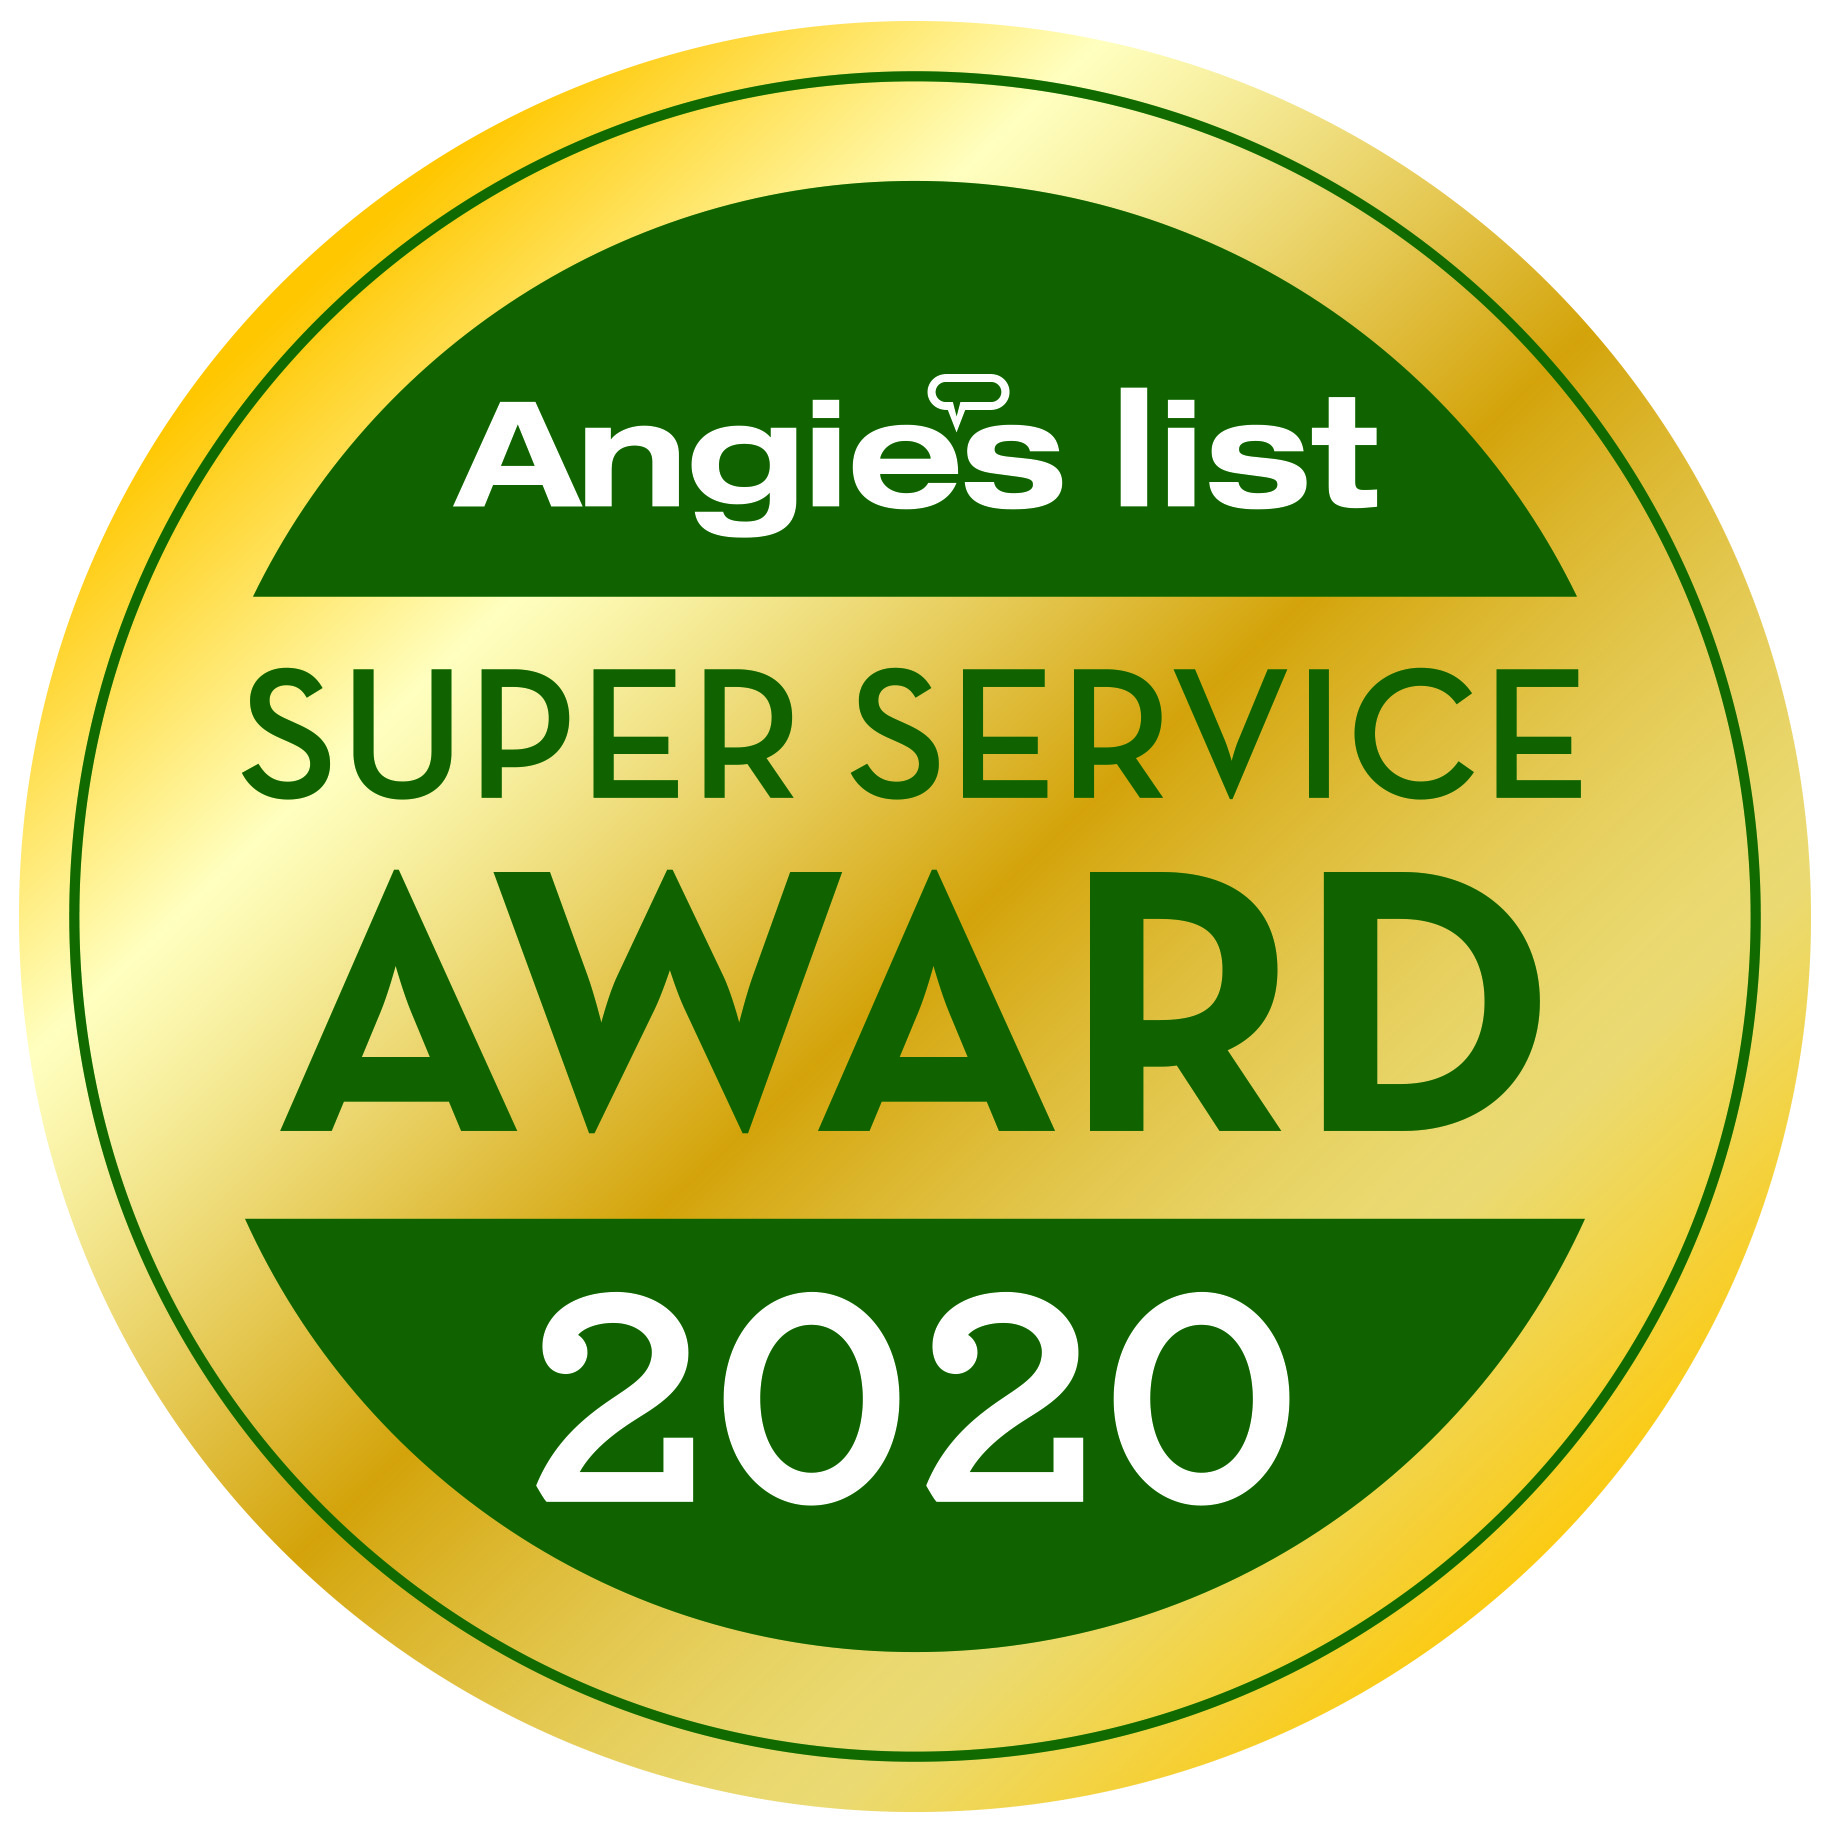 The Basic Companies - Angie's List Super Service Award Winner 2020